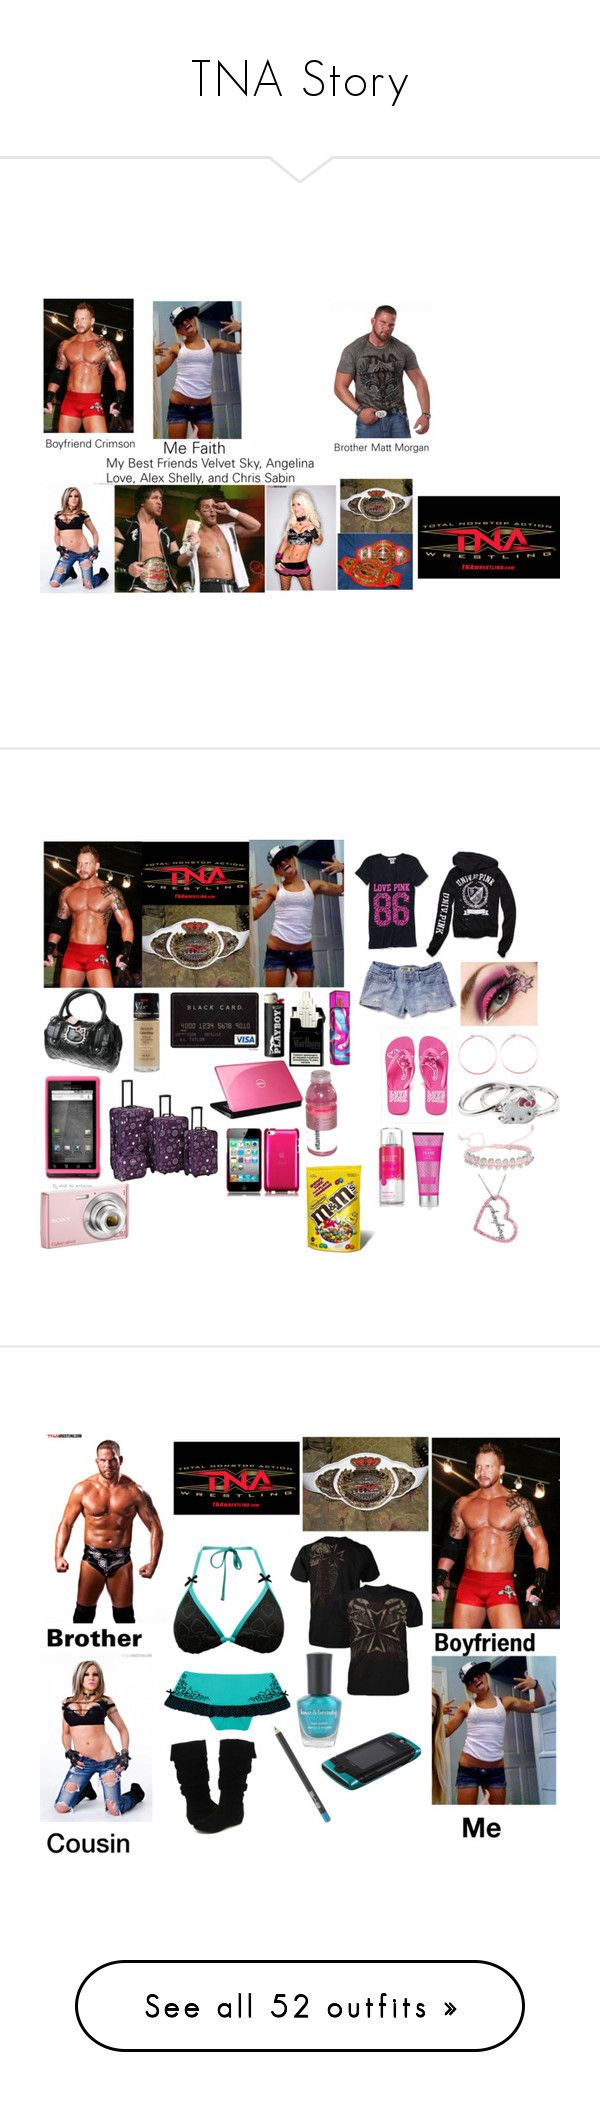 """TNA Story"" by chylove ❤ liked on Polyvore featuring ANGELINA, TNA, Rebel Spirit, Hello Kitty, Motorola, Revlon, Rockland Luggage, Sony, Victoria's Secret and Candie's"